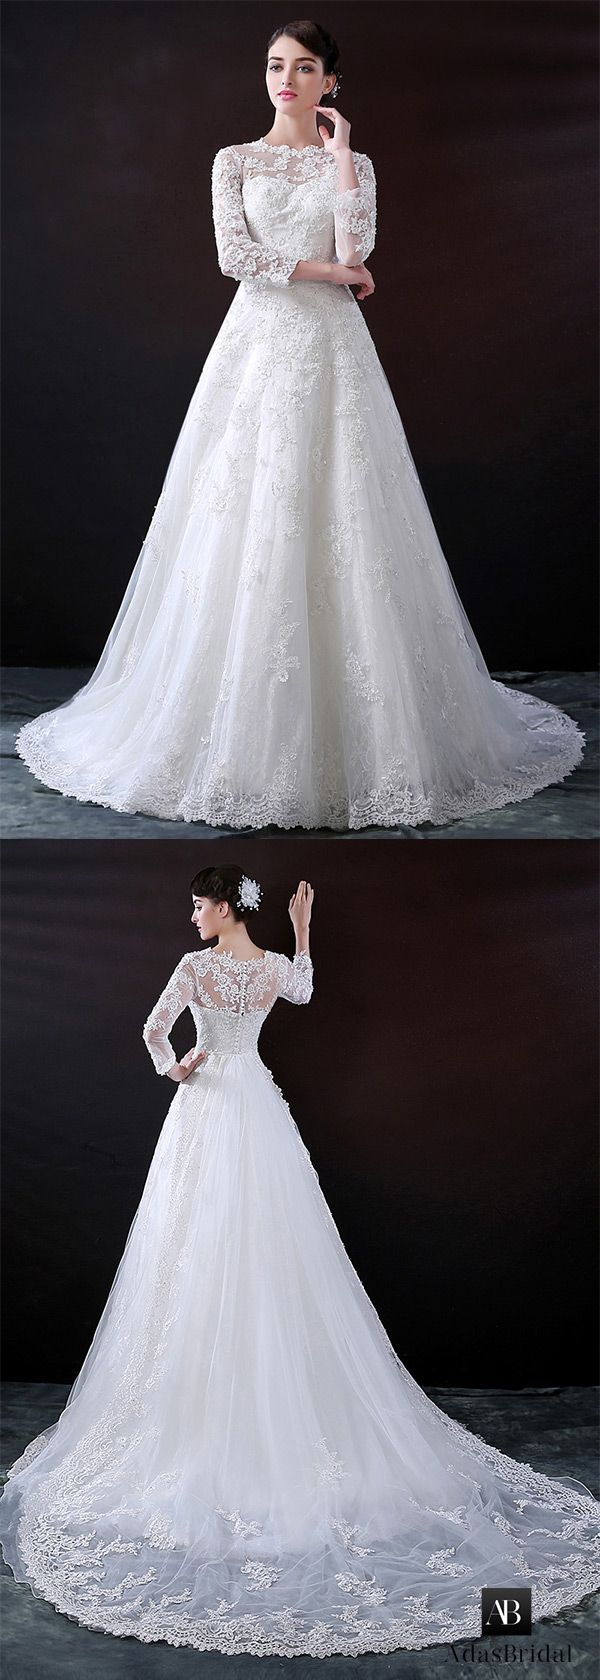 Charming tulle bateau neckline a-line wedding dress with lace appliques. Free shipping now! (WWD70380) - Adasbridal.com